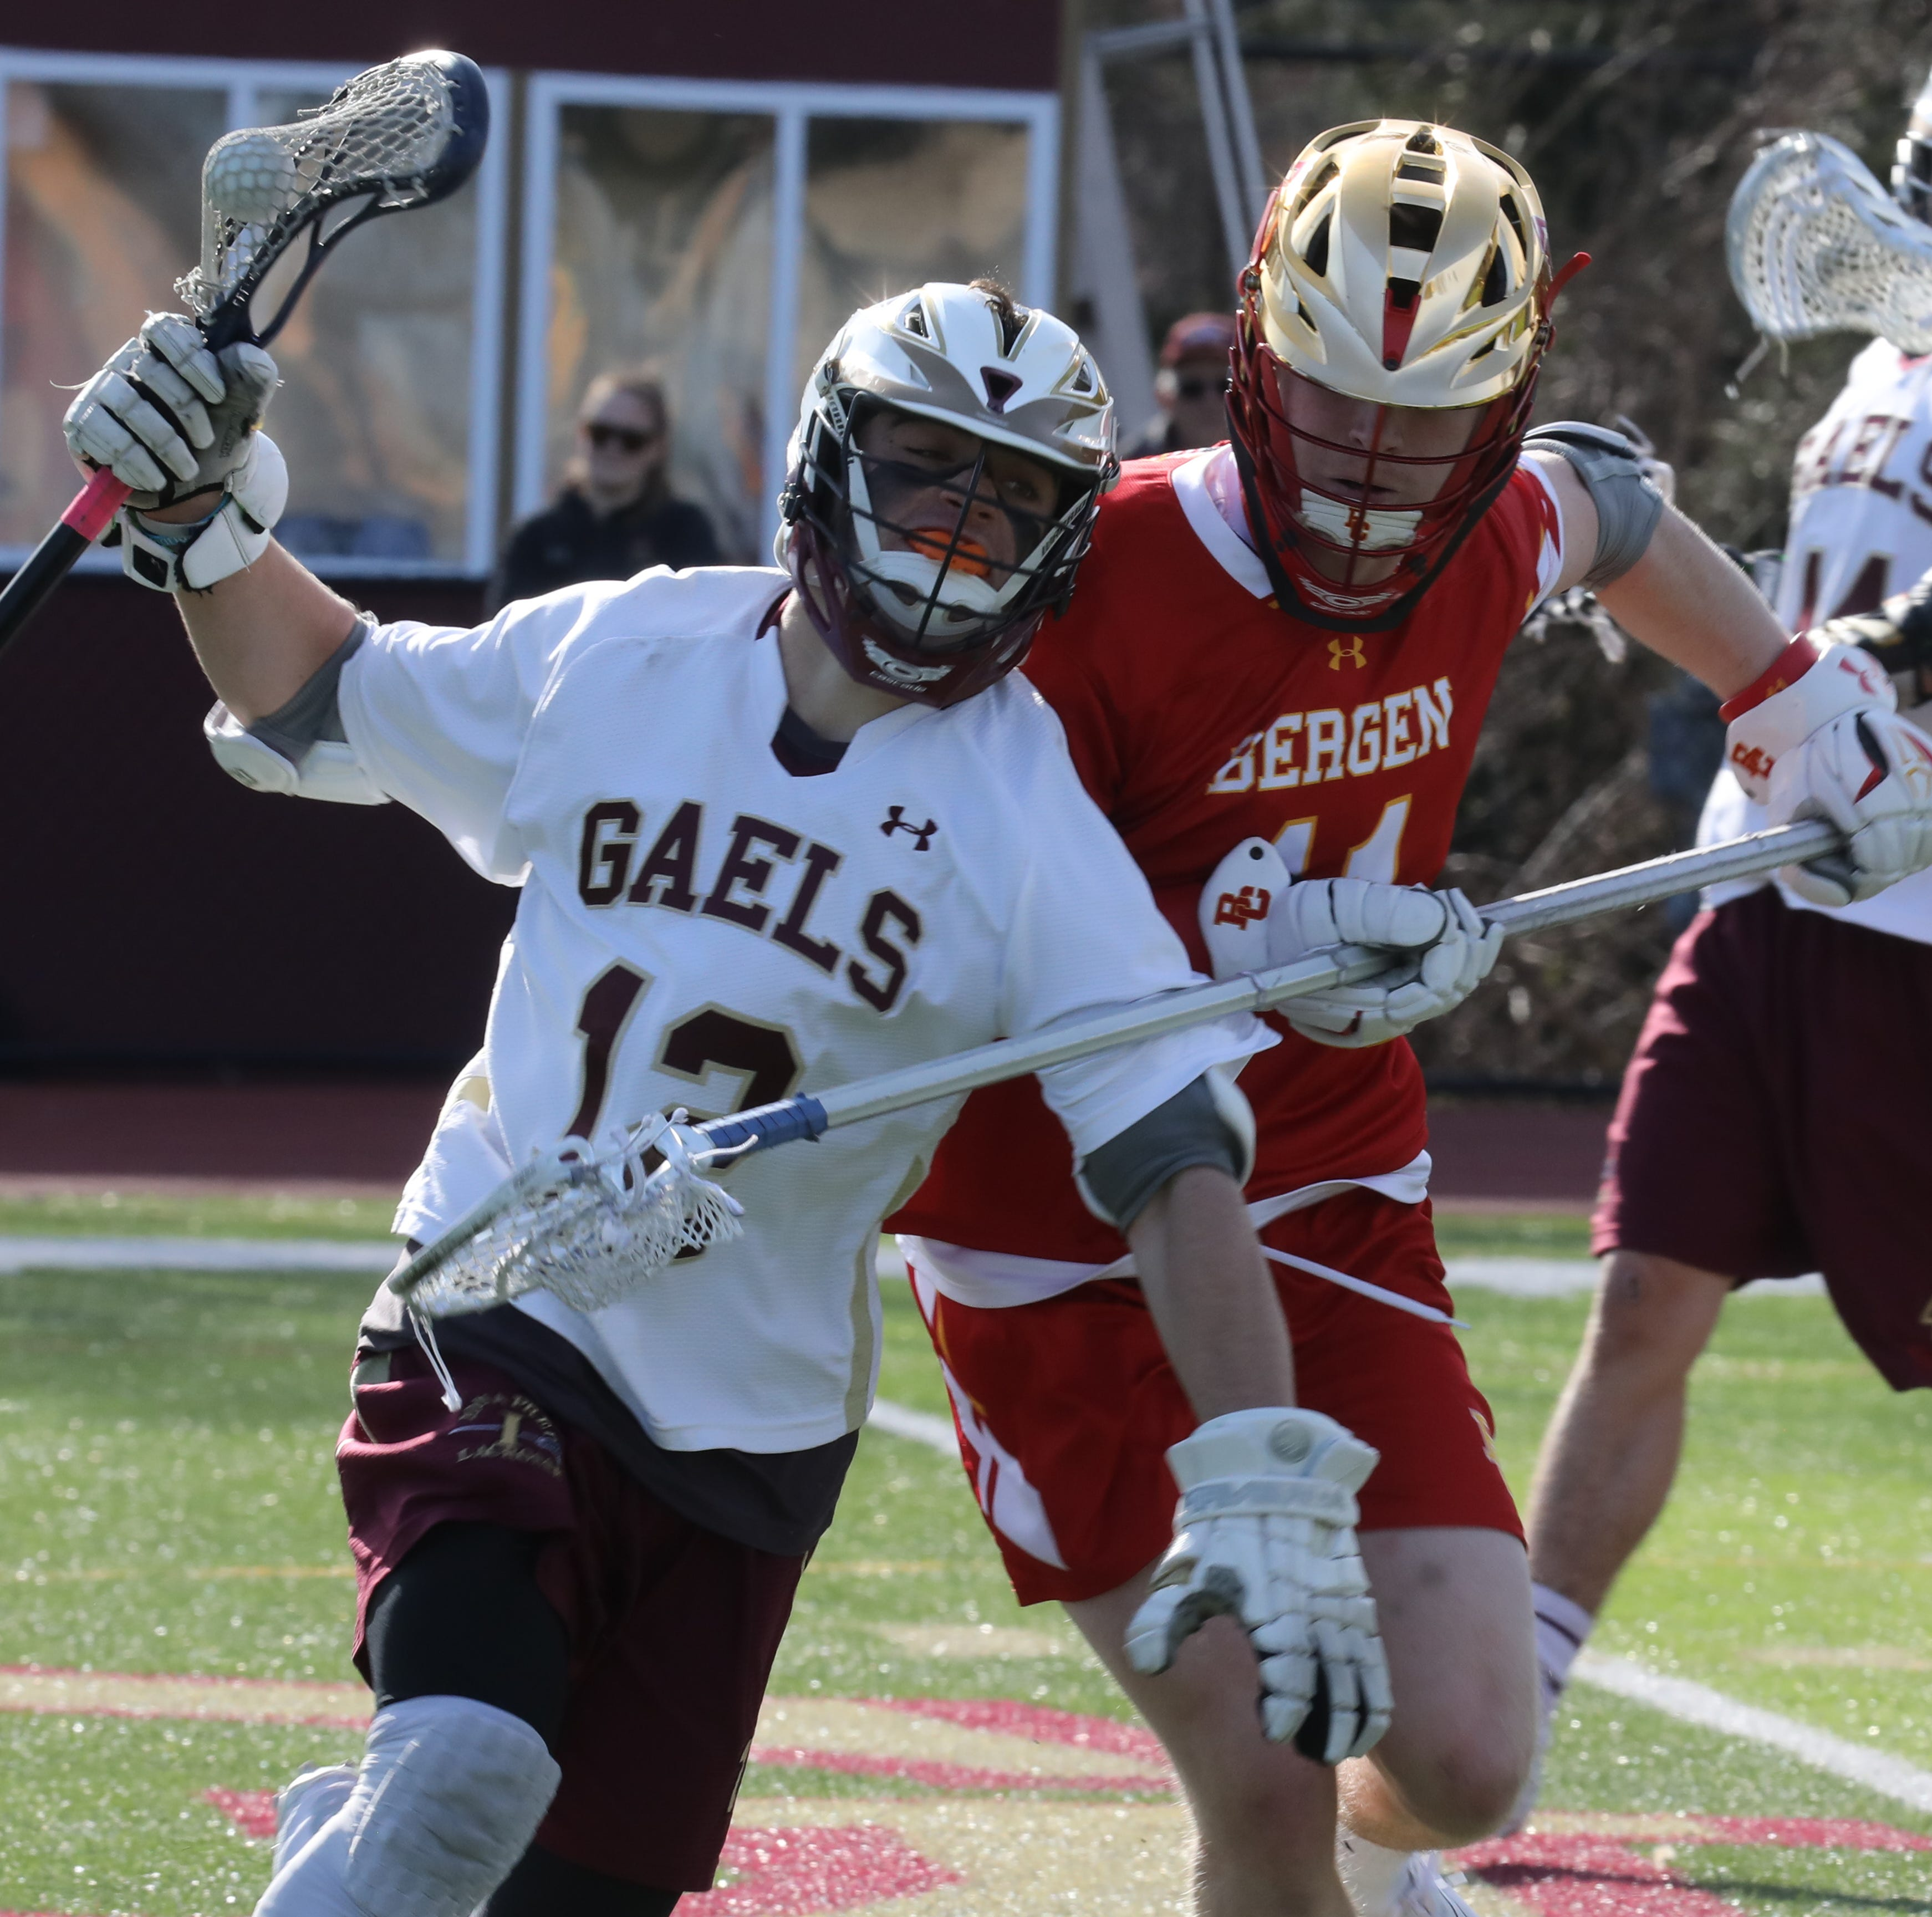 Boys lacrosse: Iona Prep blows the lead, then rallies for a win over Bergen Catholic